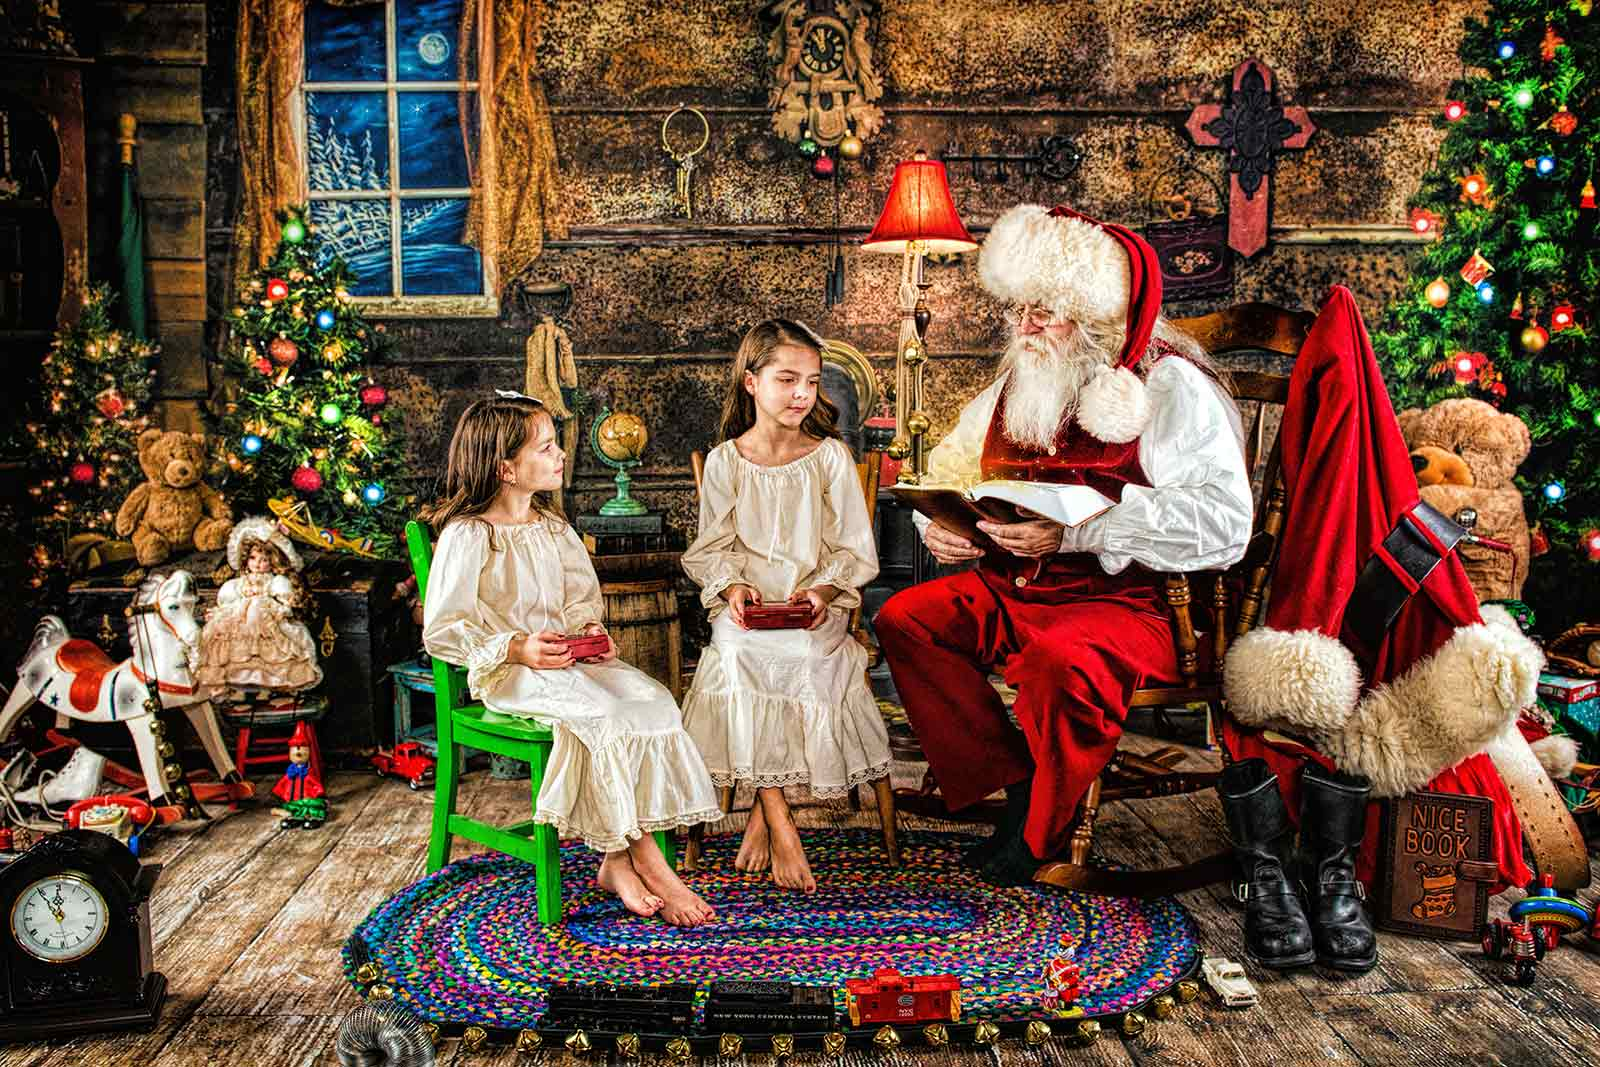 009_Magic-of-Santa-Anna-Thielen-Photography